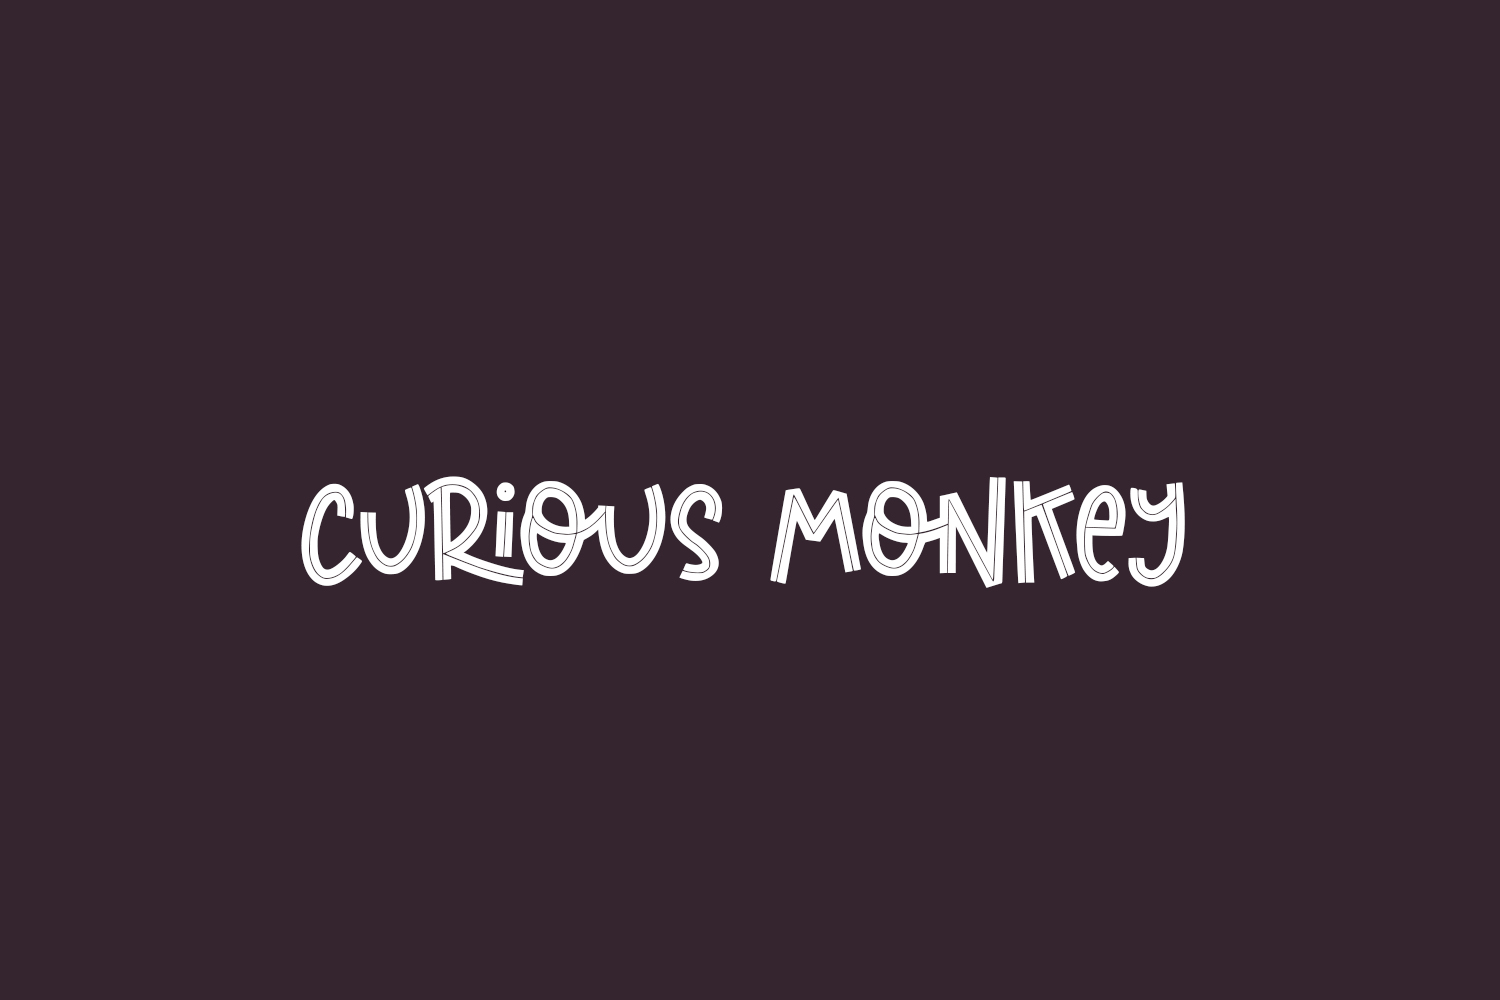 Curious Monkey Free Font